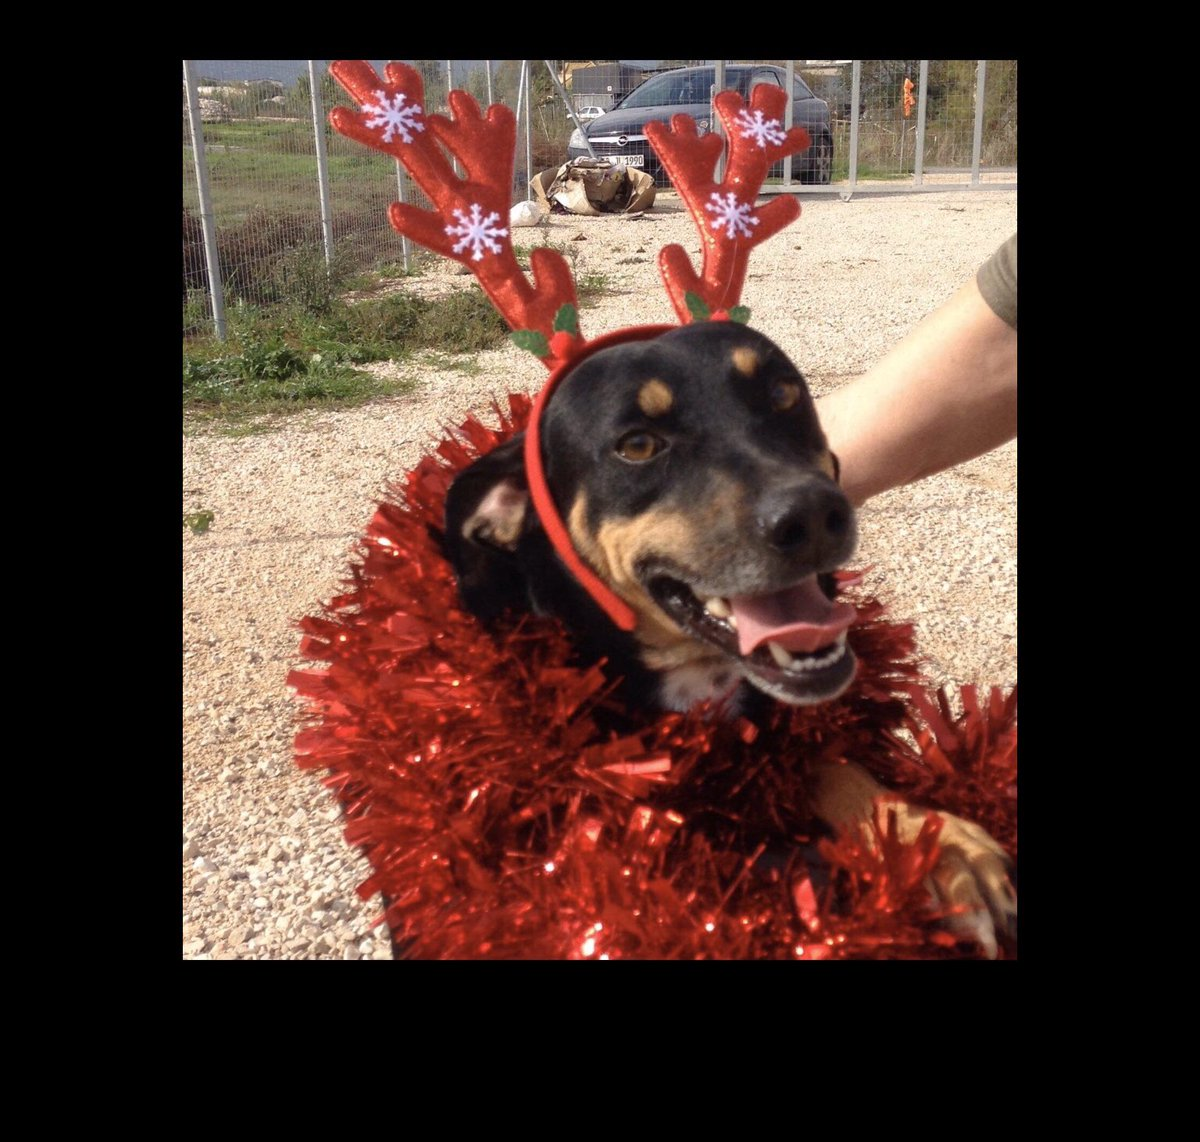 3 year old Clyde is preparing for #Christmas ! He's a lovely, #Grateful friendly boy, whose Christmas wish is to find a loving #home & #family to belong to in #uk #Germany  #NL ? Could you make his #DreamComeTrue   #AdoptDontShop #ADOPT #dog #dogsarefamily #DogLover #CuteDog<br>http://pic.twitter.com/d9LxCS8SPB